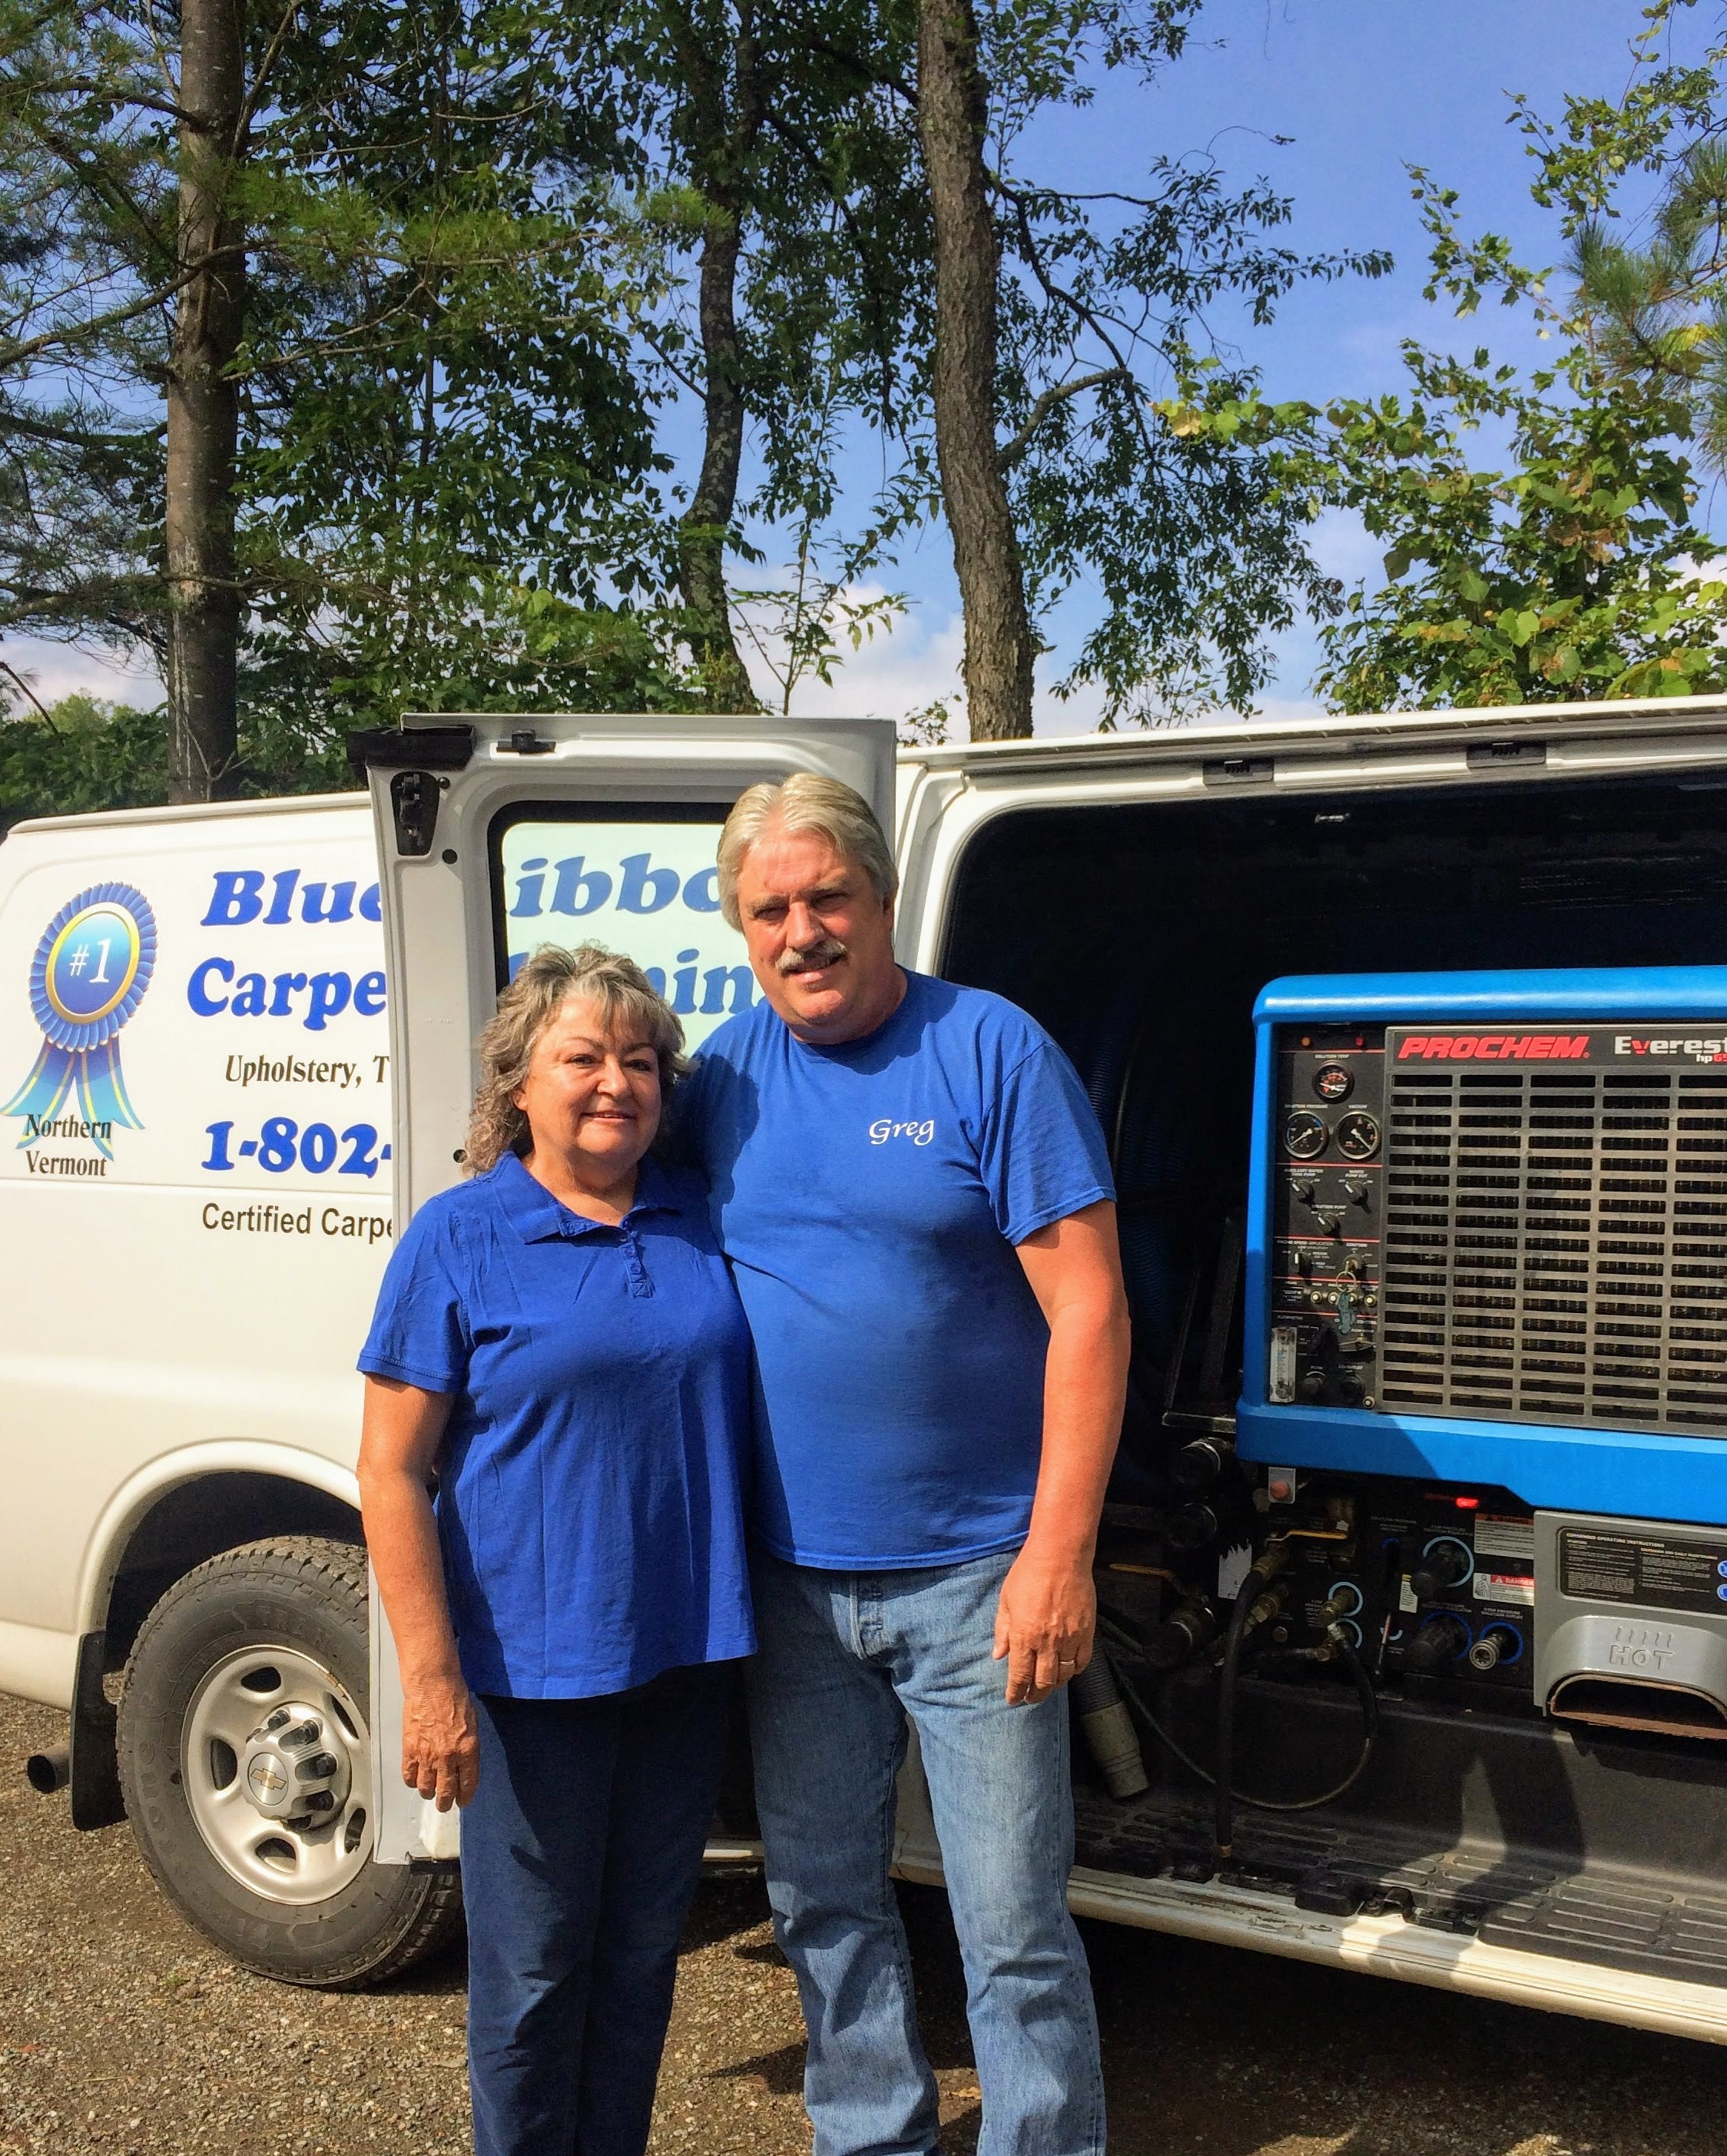 Nice to meet ya! - We are Greg & Kathy Stevens. A husband & wife team who love rockin' out at concerts, soaking up the great Vermont outdoors, along with the gorgeous views from our side-by-side as we explore the vast mountains.As avid pet lovers, we know first hand the positive effects that regularly + professionally cleaned carpets can have on our health.That's one reason we pride ourselves on making sure our friends, family and wonderful clients are breathing the cleanest air possible, whether in our home and business or theirs.